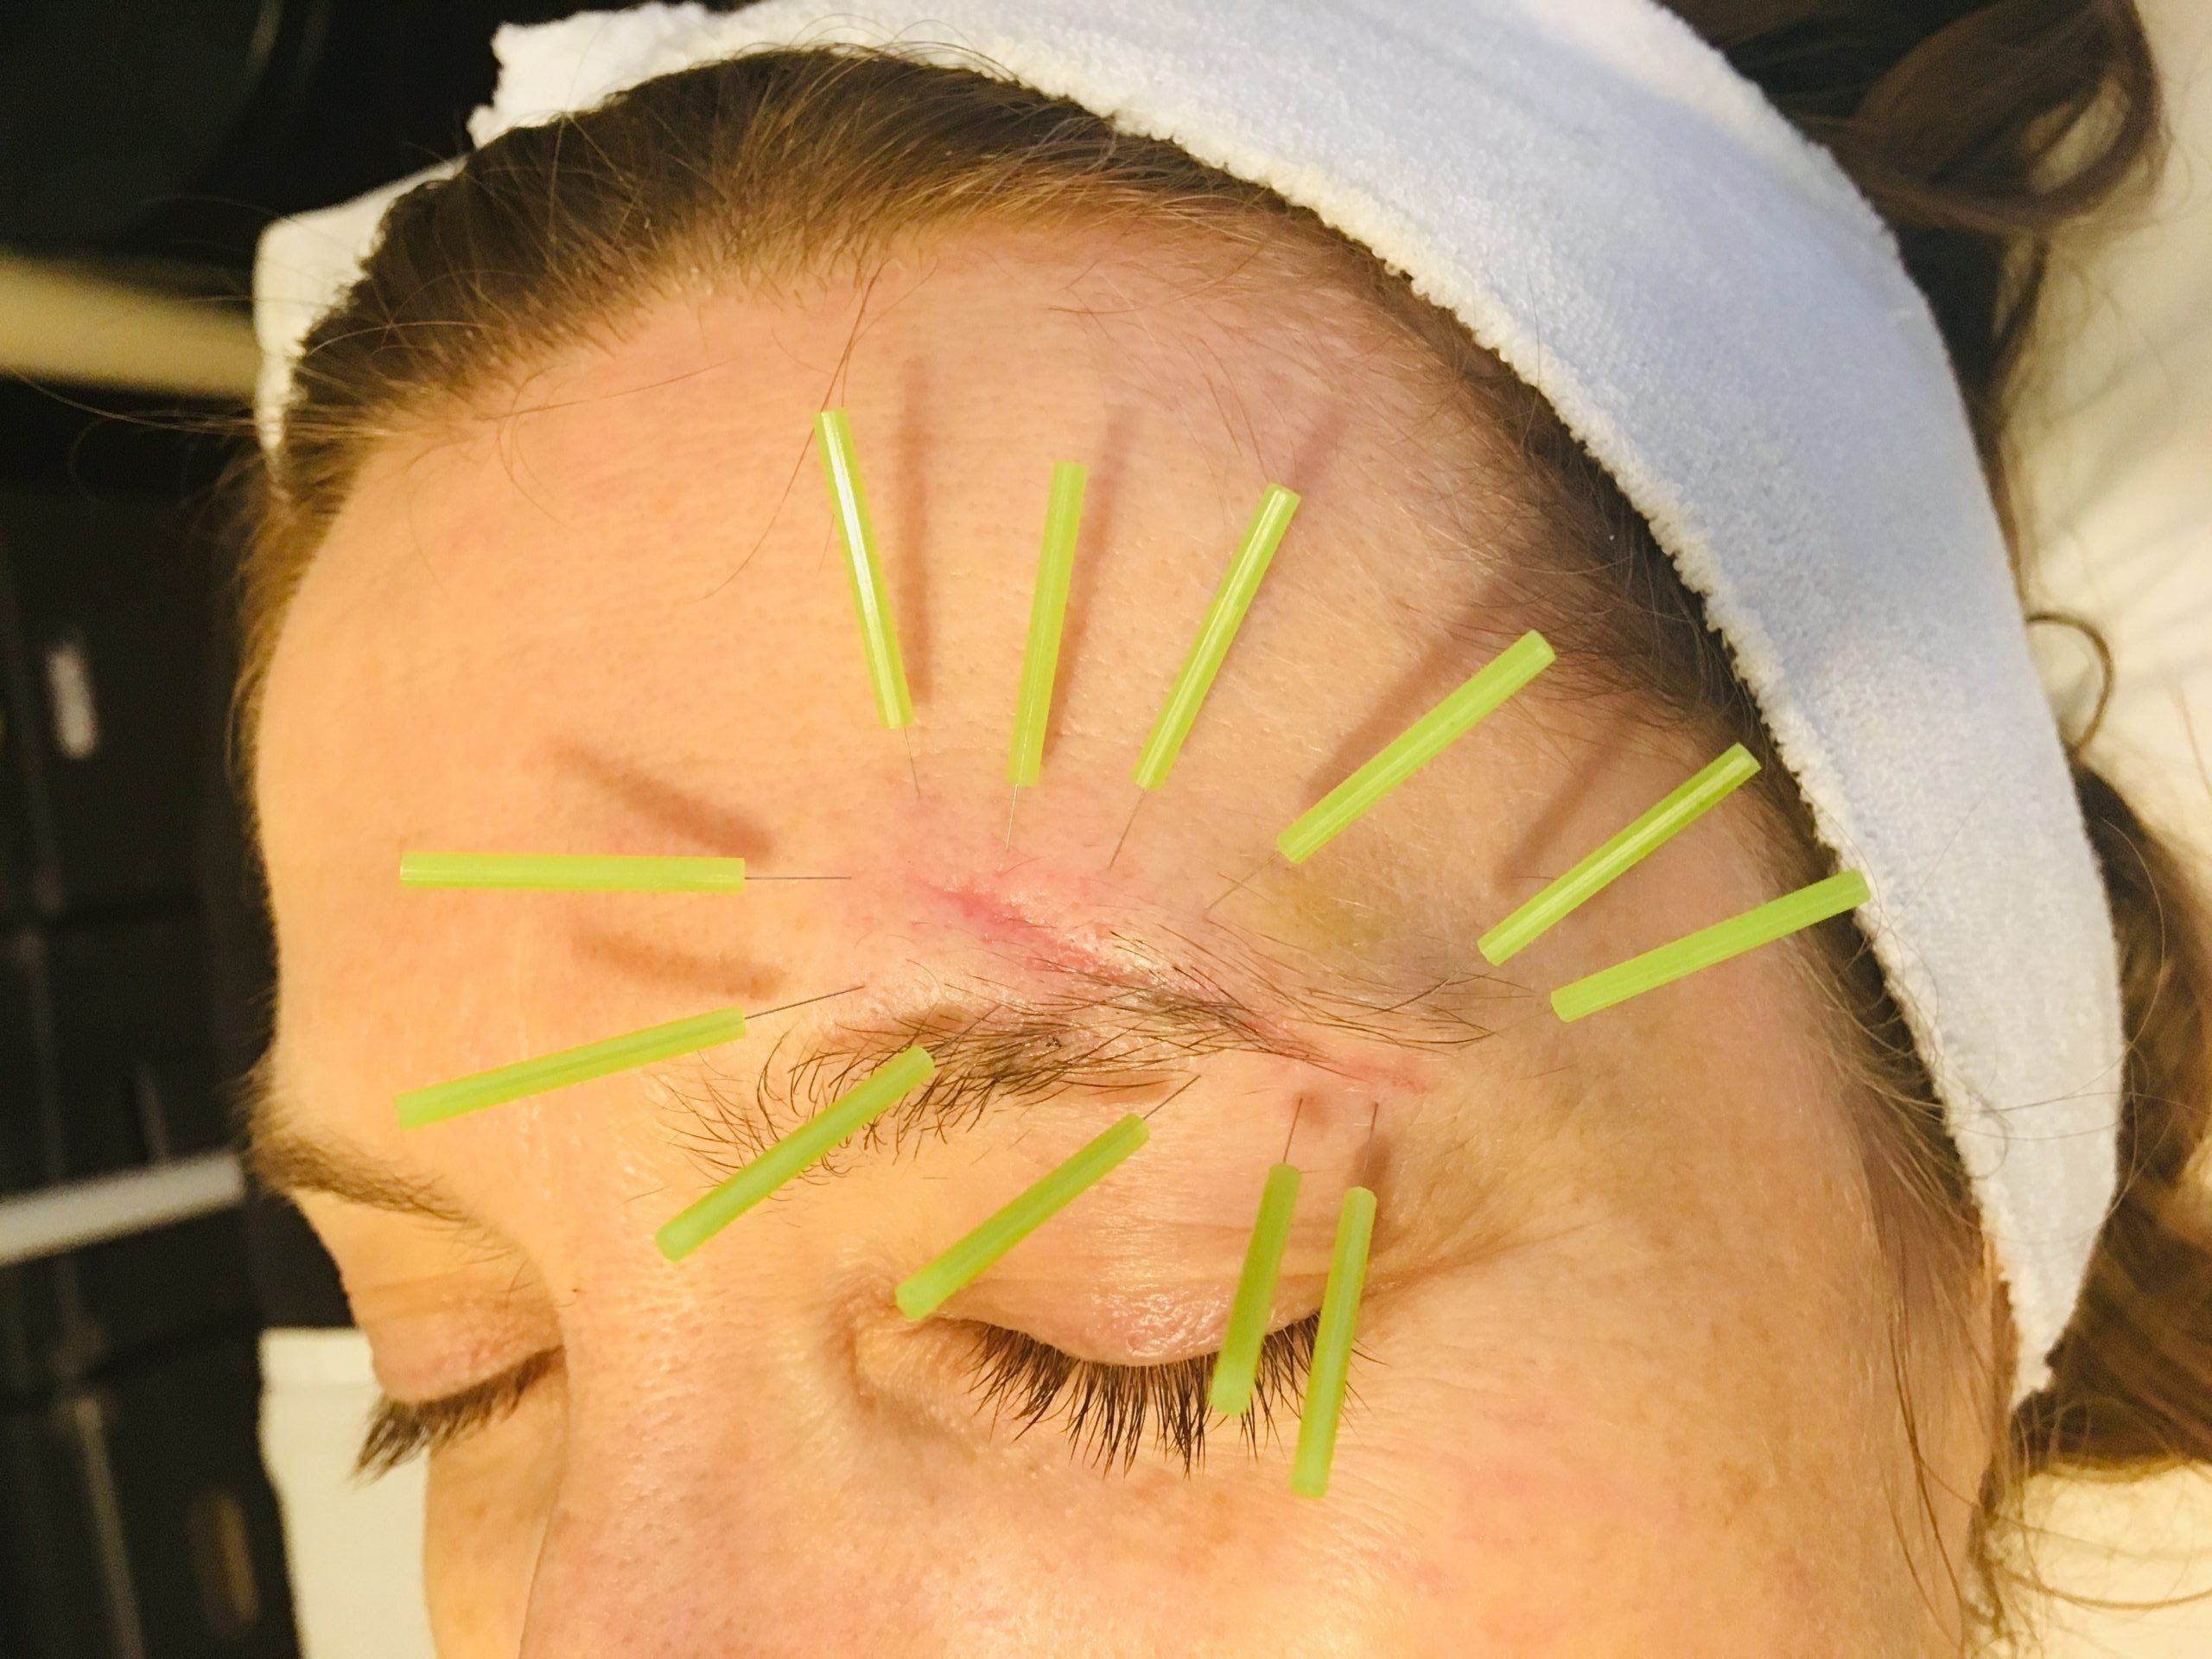 facial scar treatment